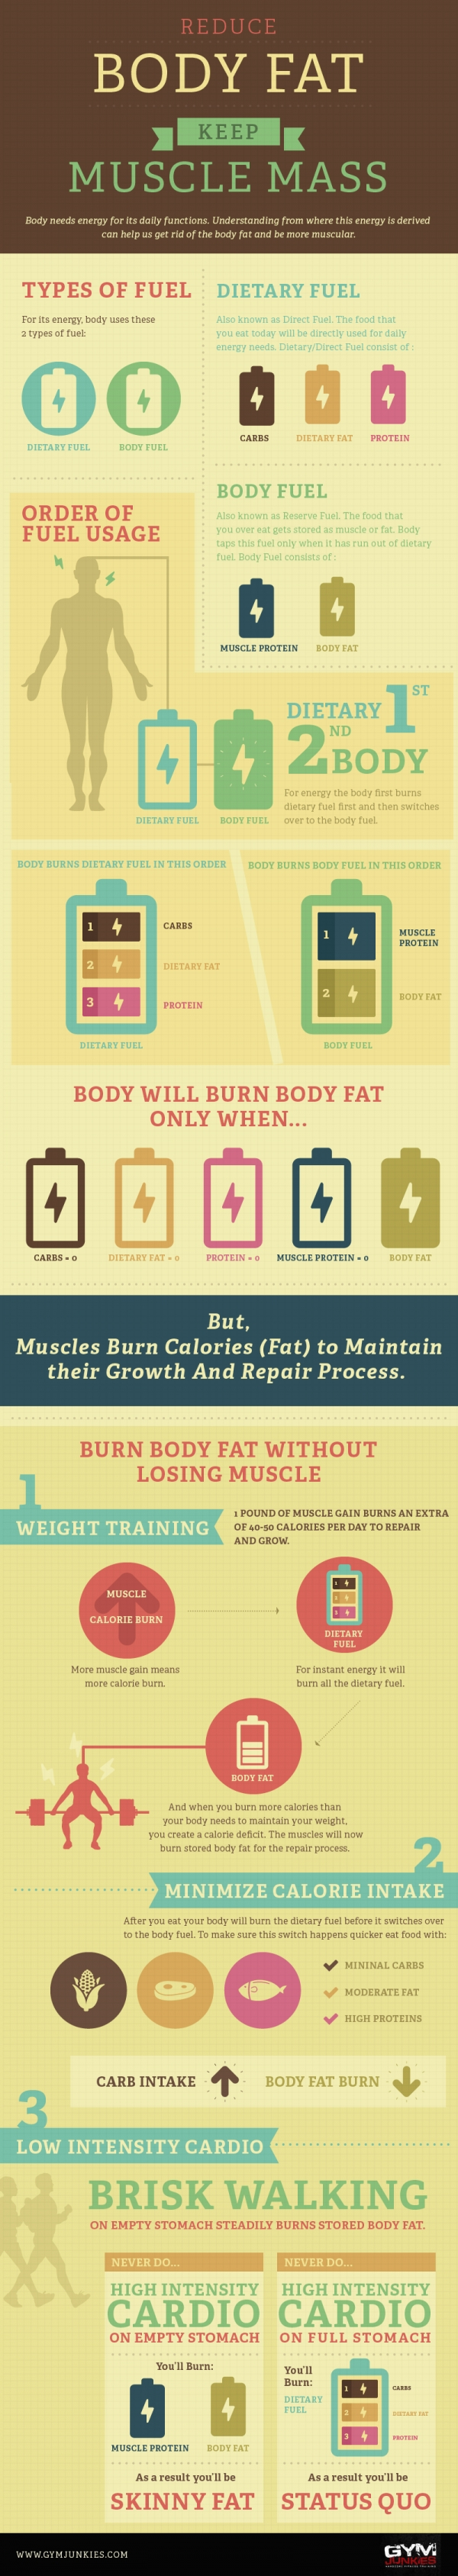 Reduce Your Body Fat and Keep Muscle Mass